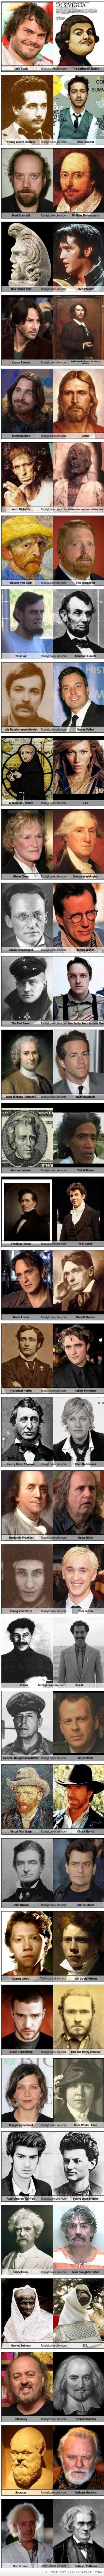 Mind Blowing Movie Characters